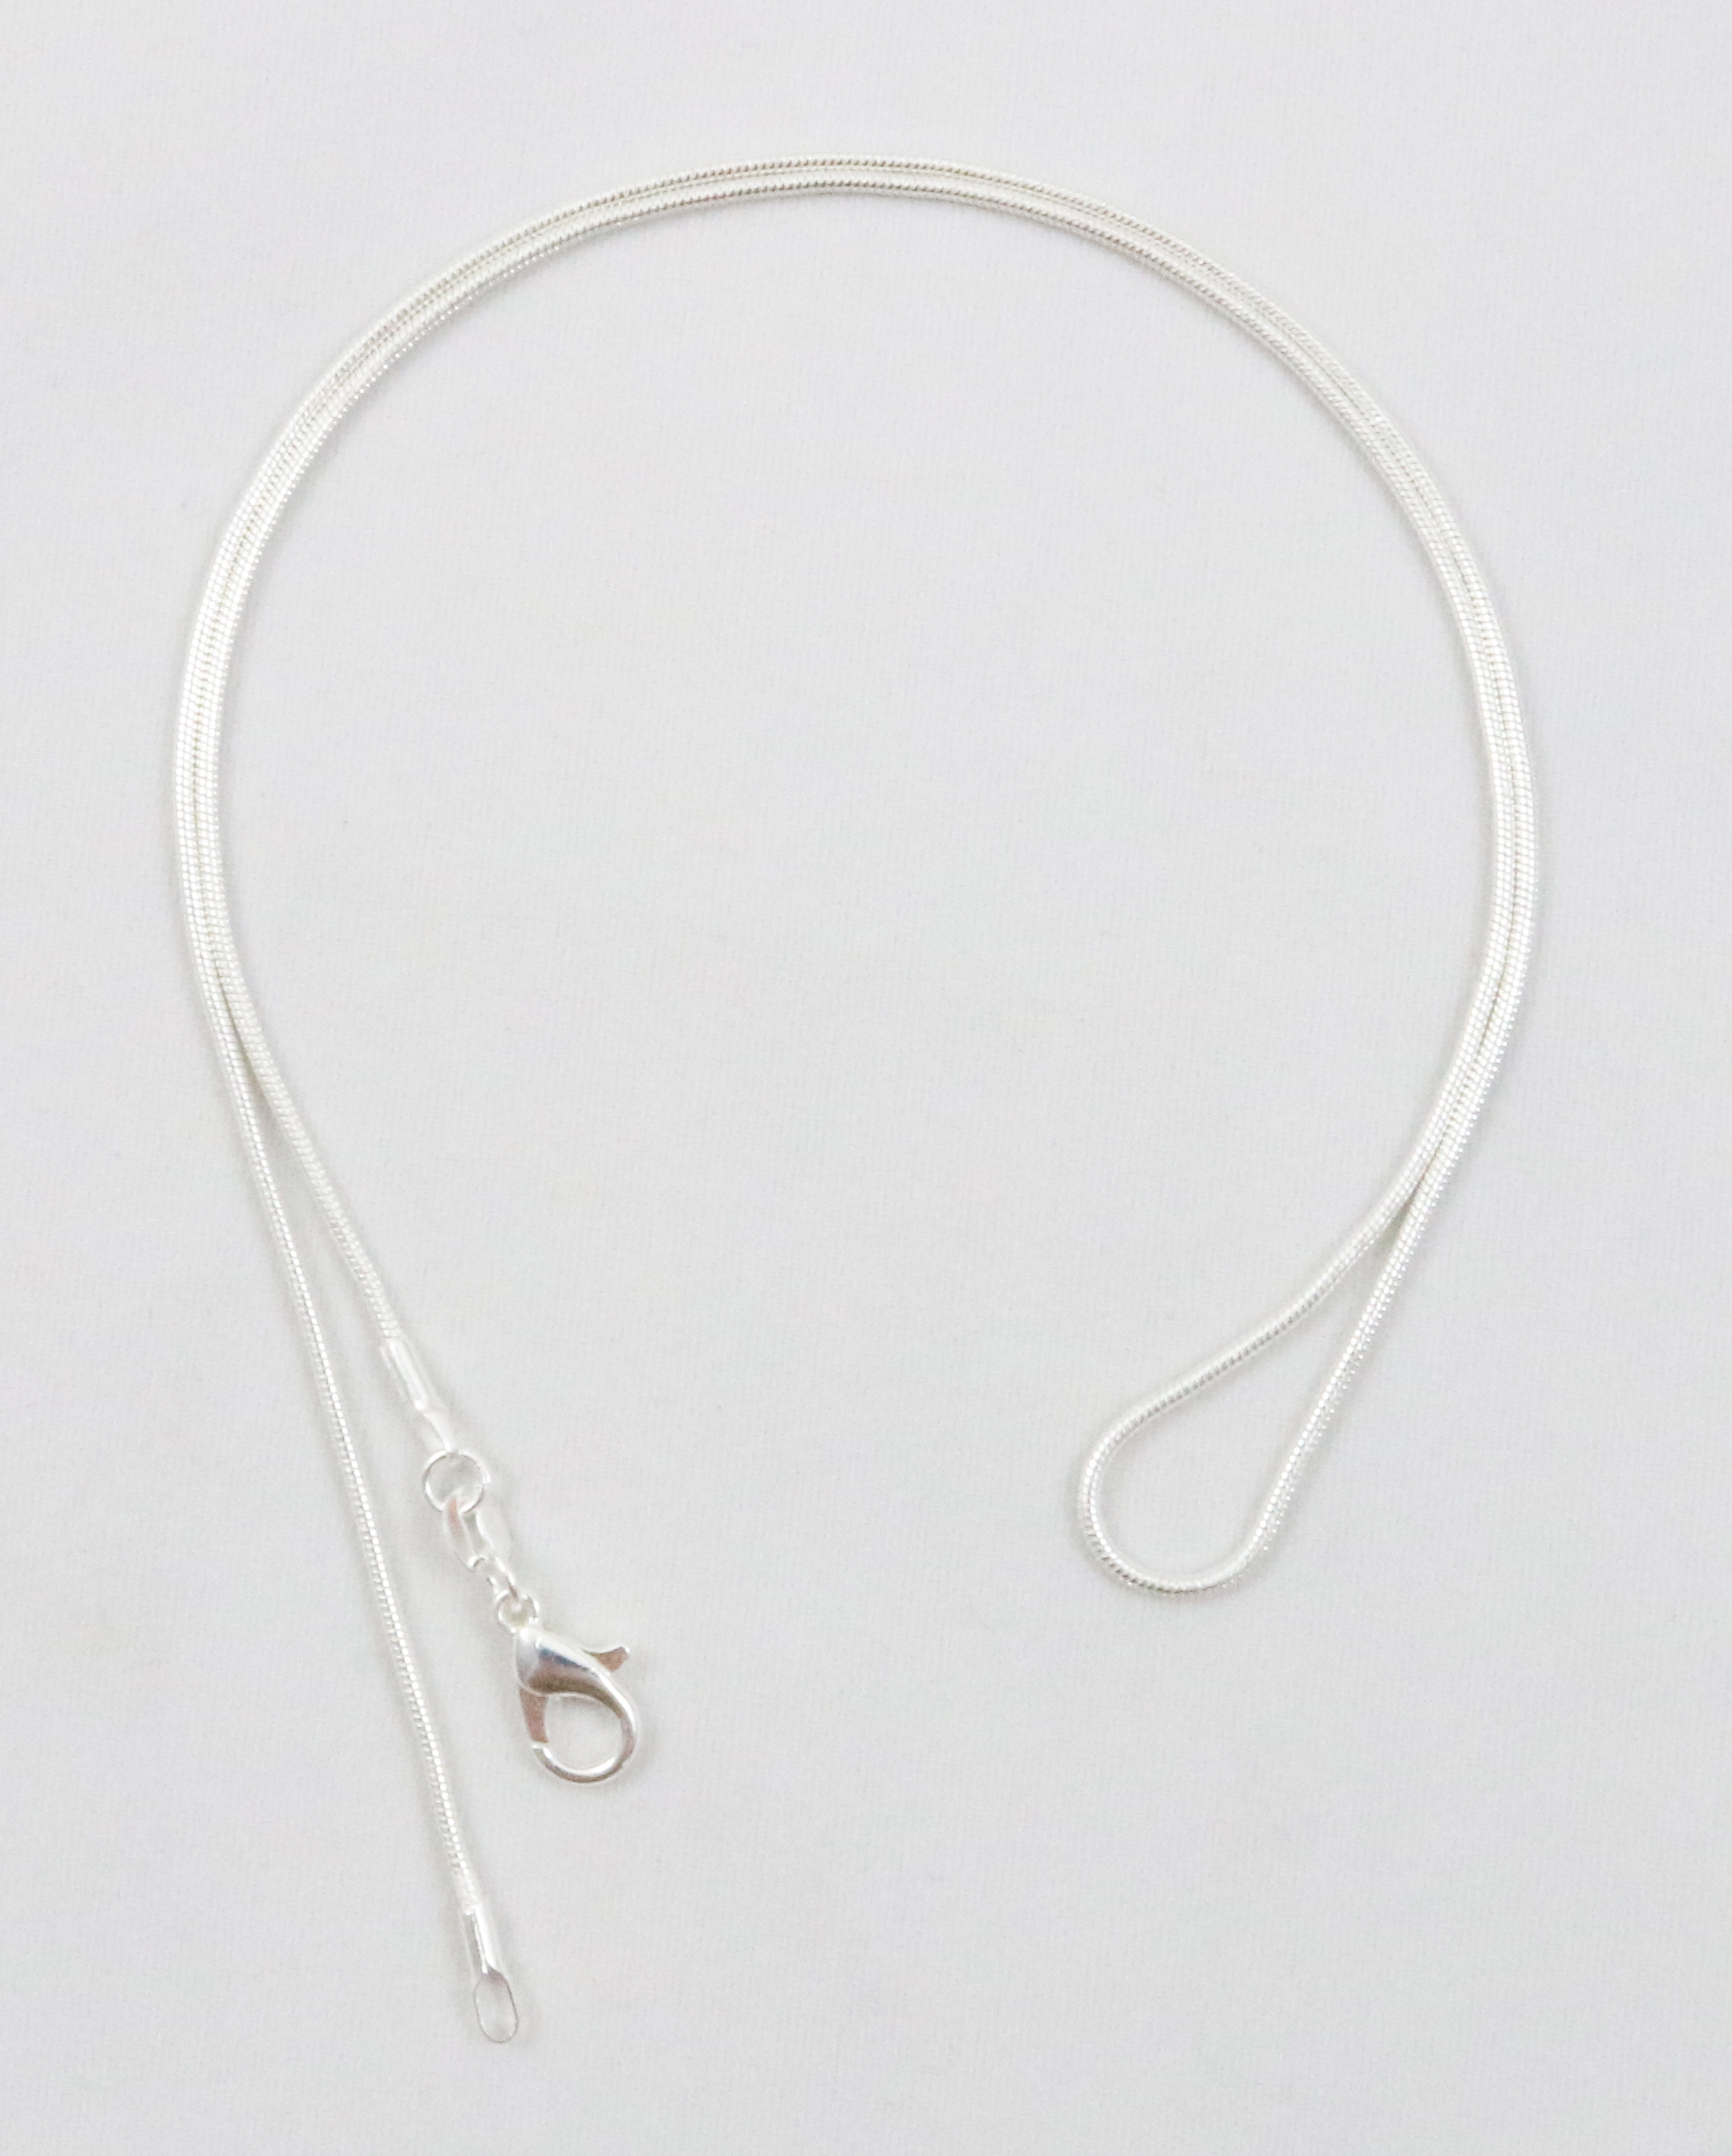 925 sterling silver plated necklace snake chain 1 0 mm  u2013 m